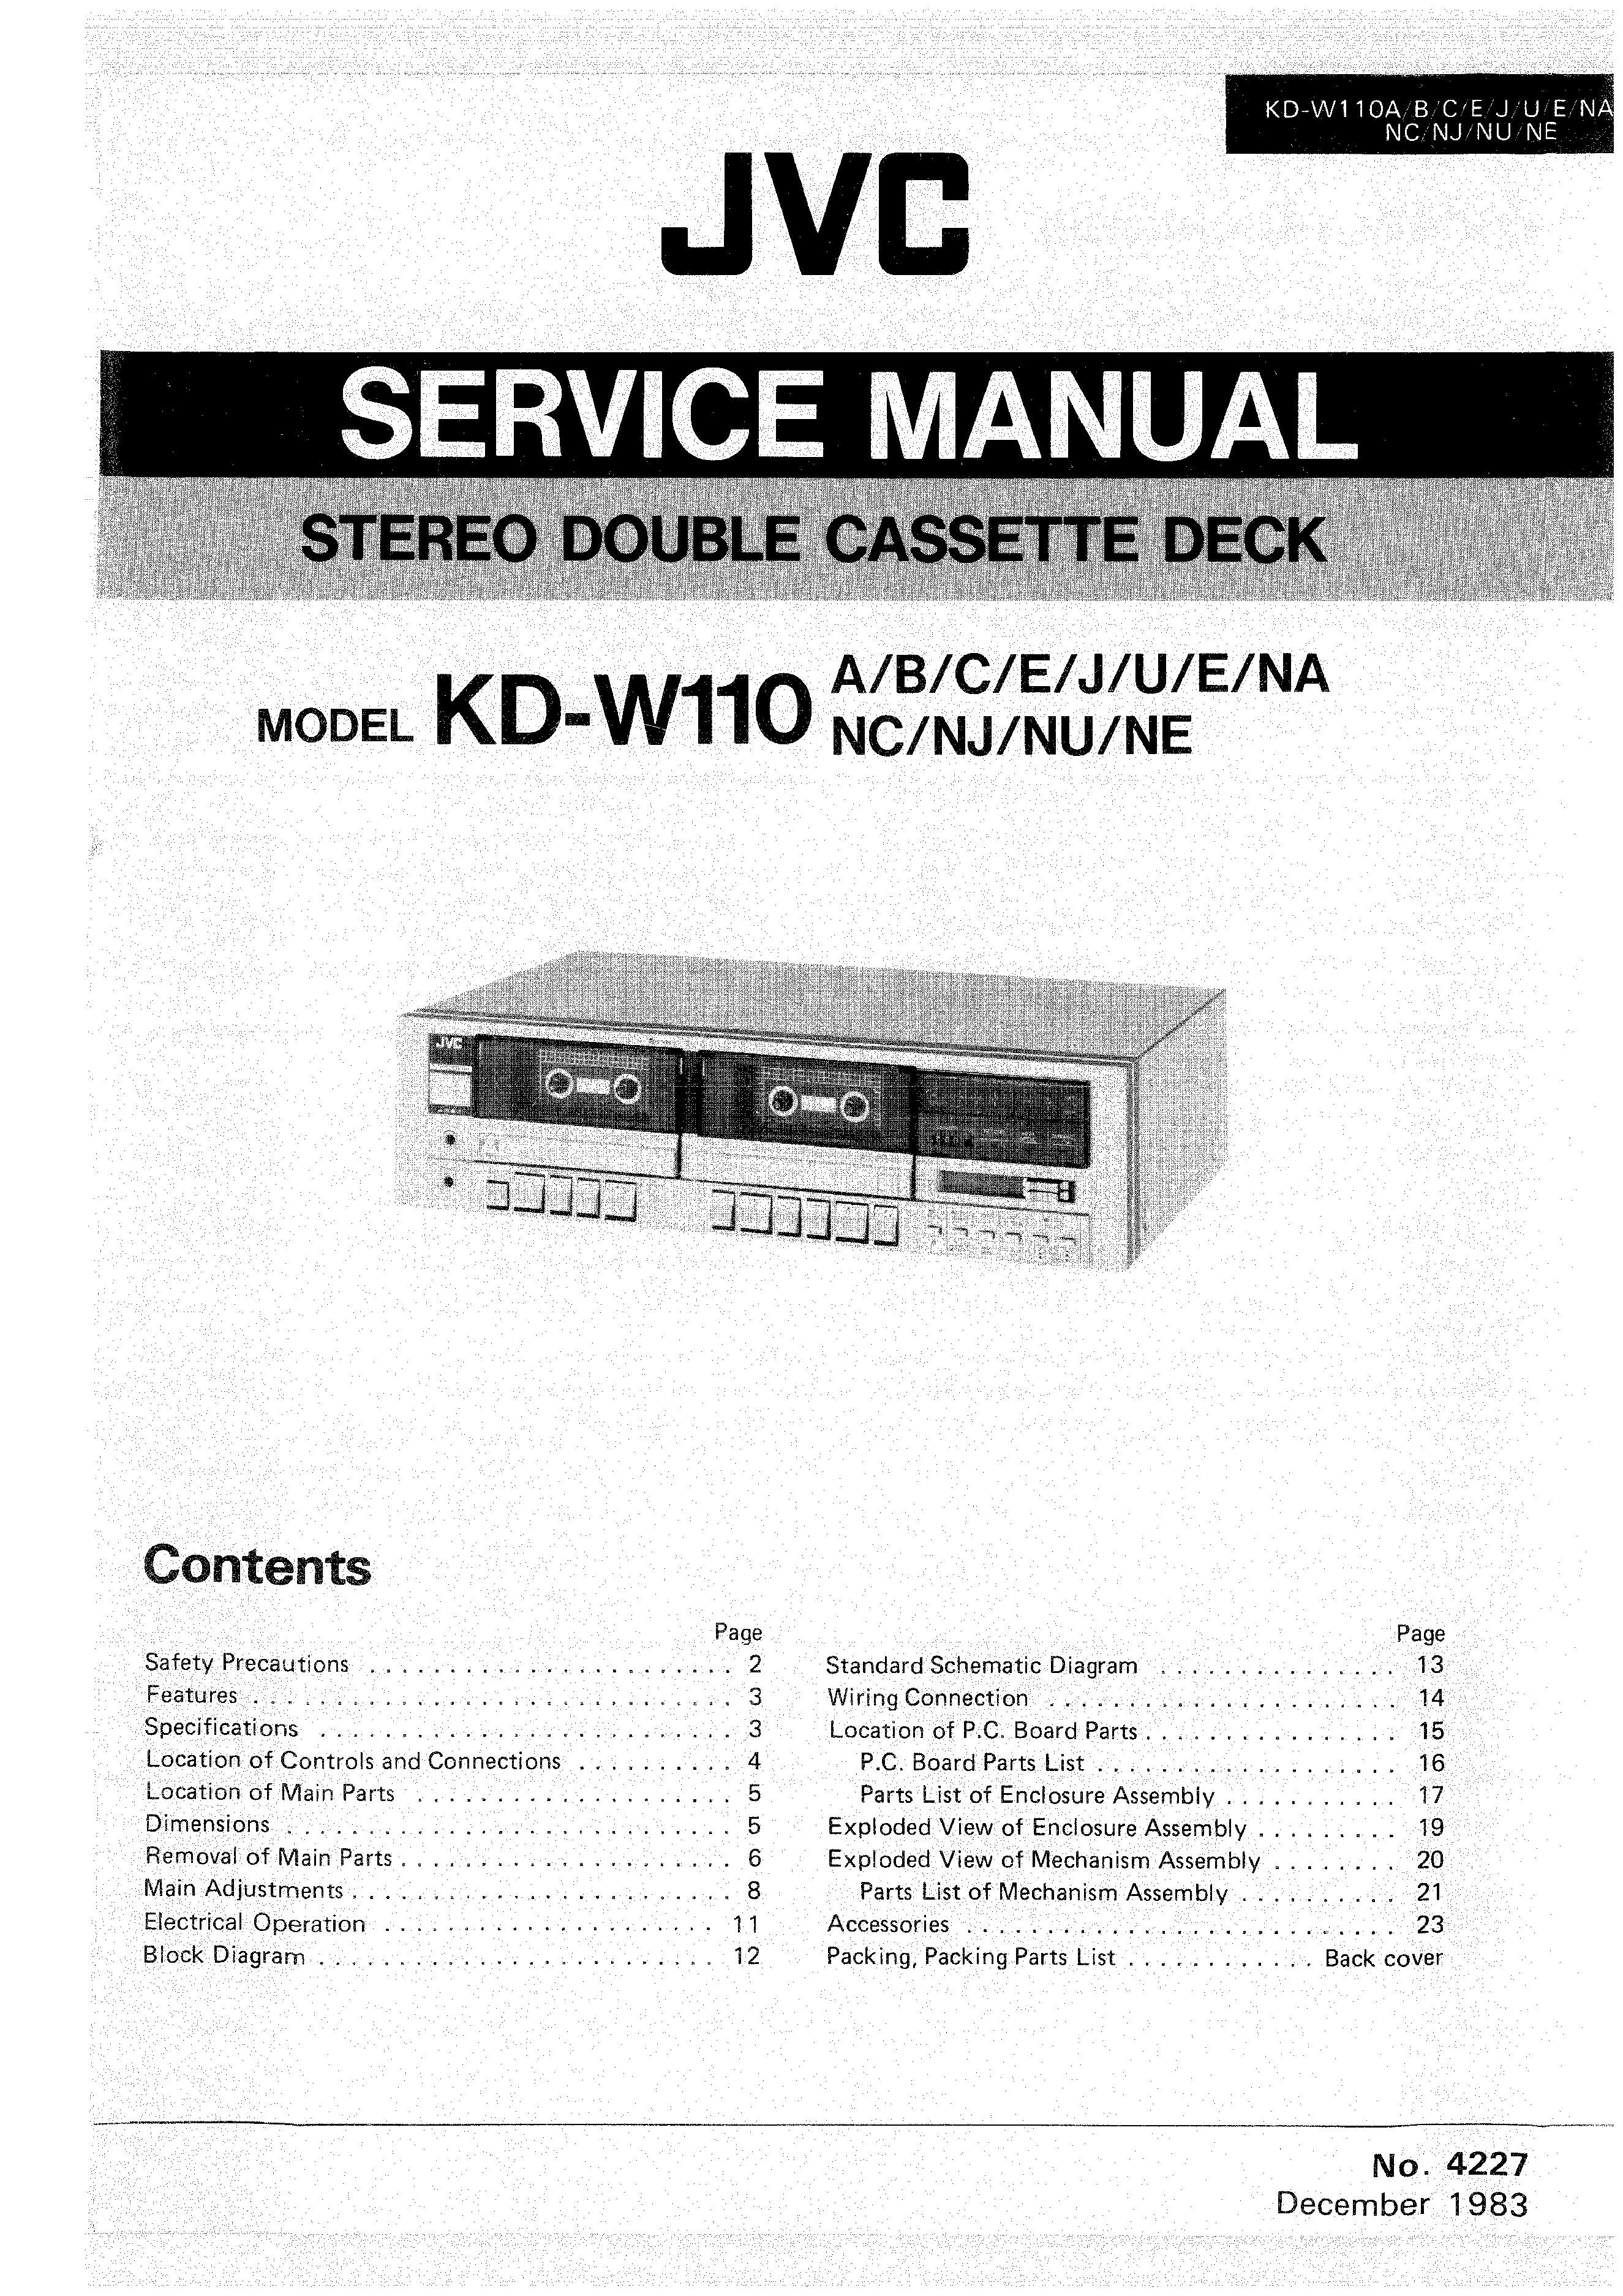 Jvc Kdw110 Service Manual Immediate Download Schematic Diagram Background Image